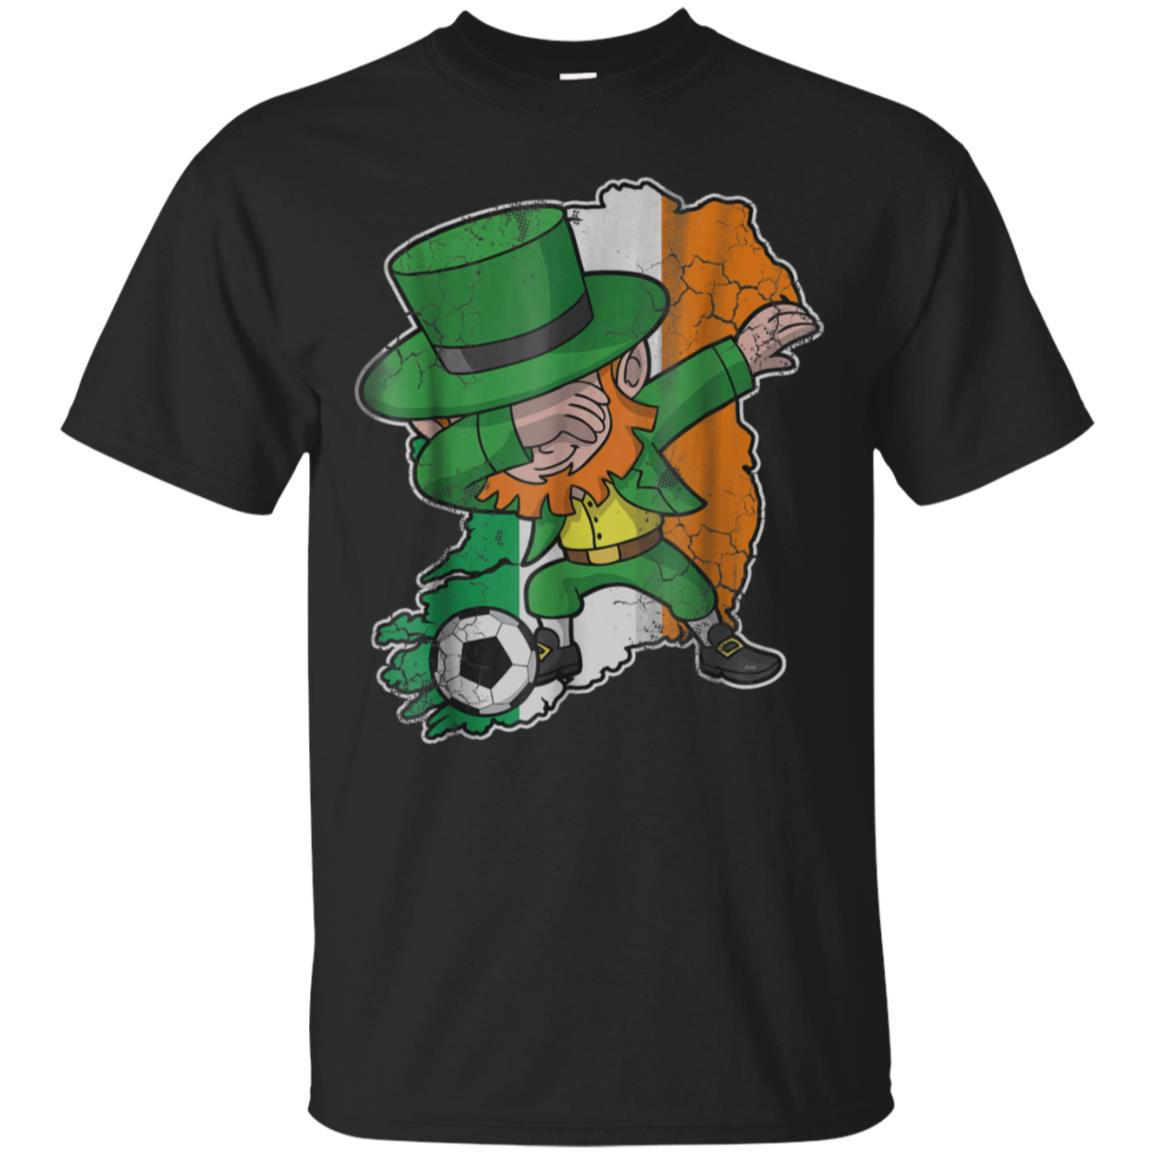 Dabbing Soccer T-Shirt Leprechaun Irish Football Shirt 99promocode